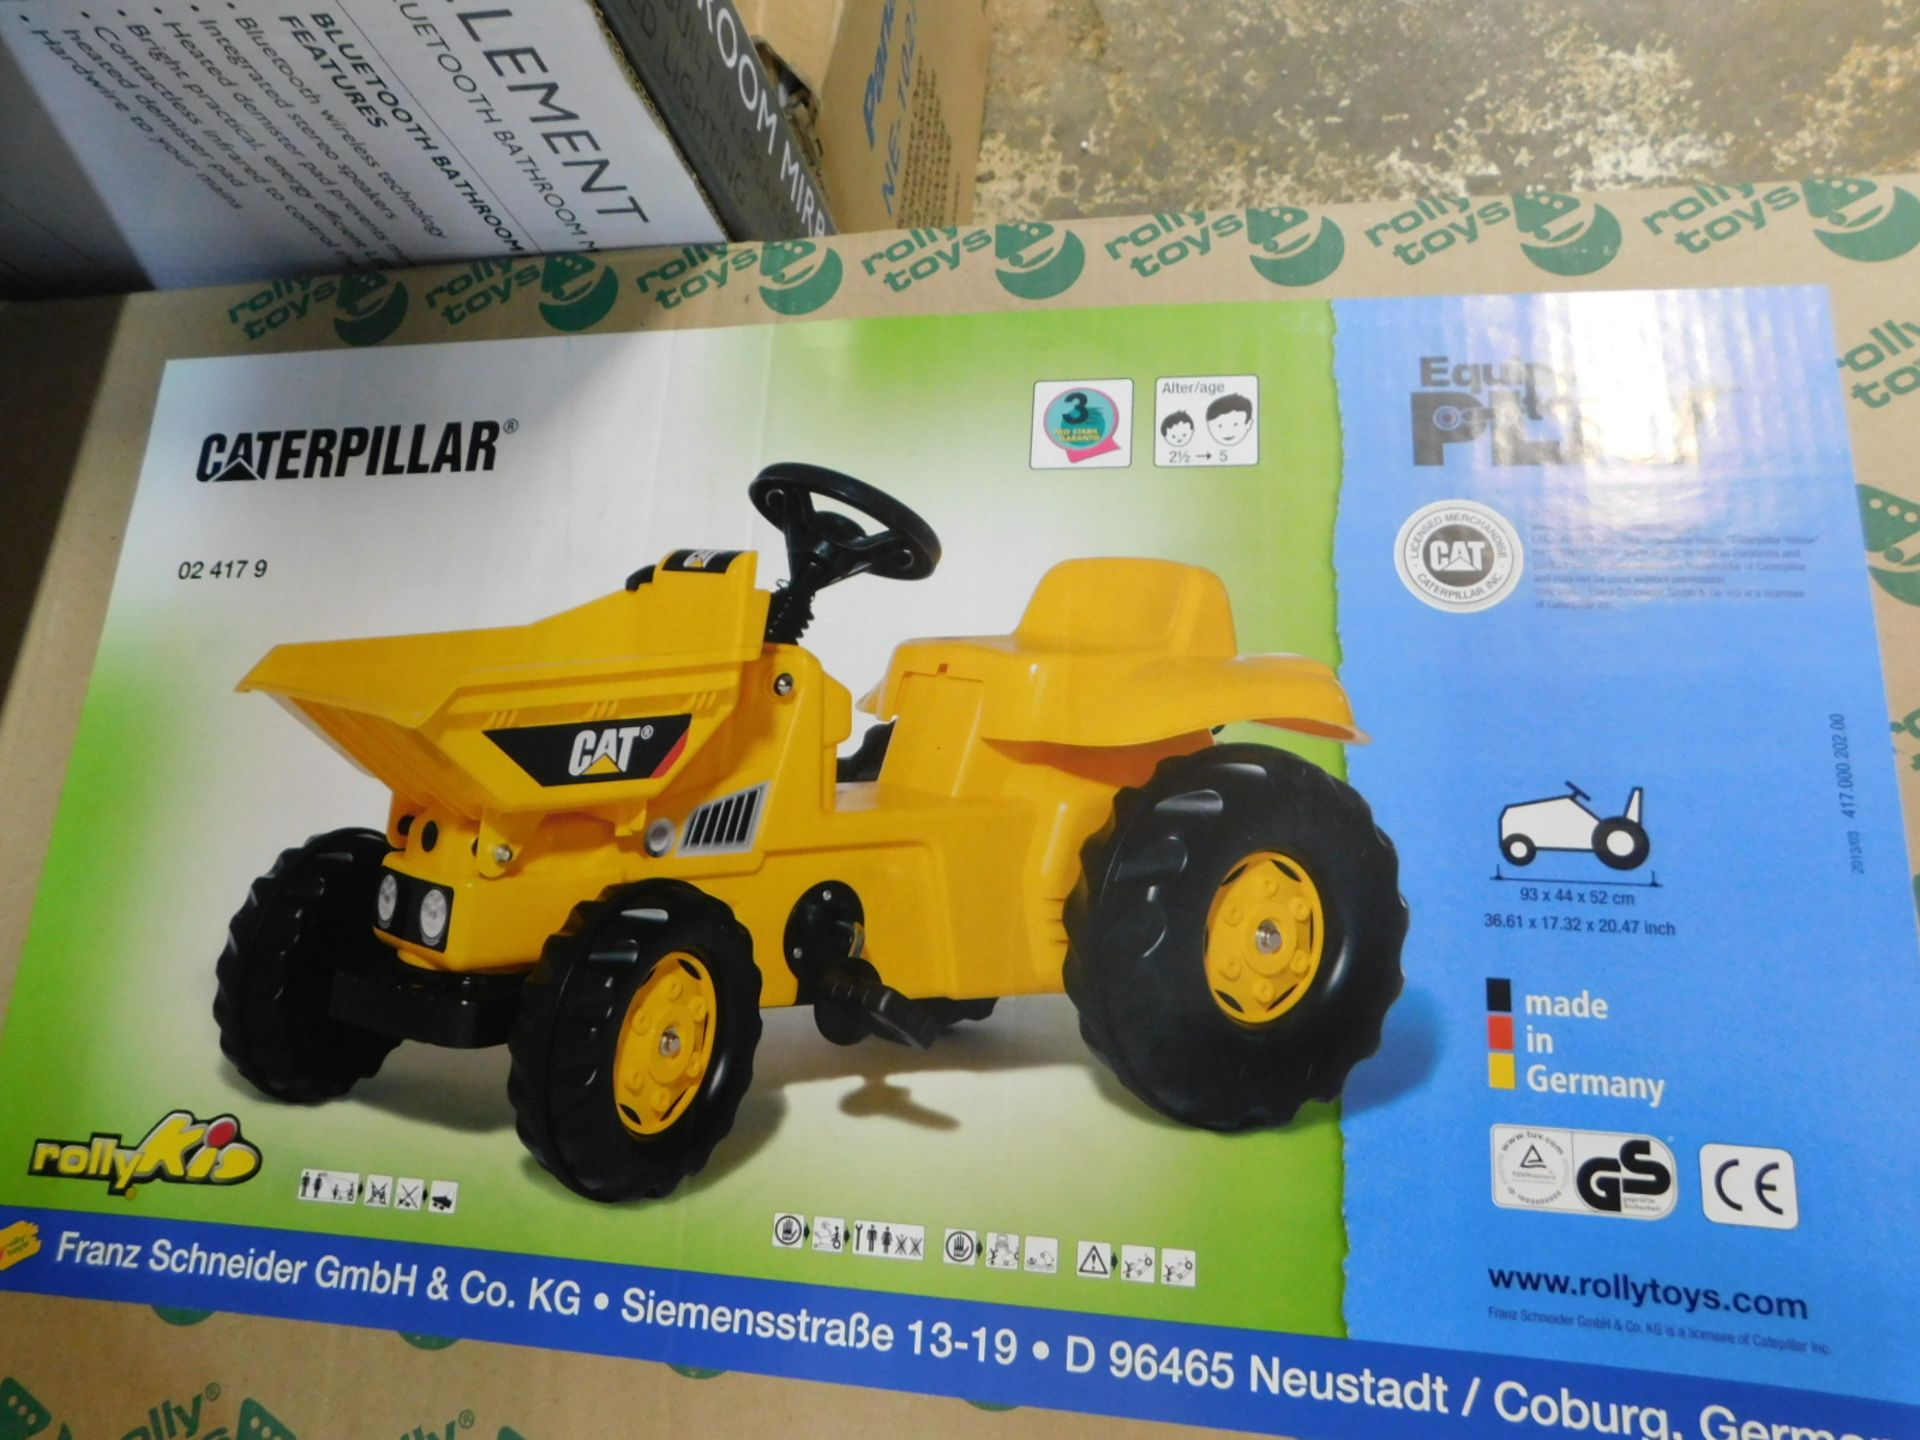 Lot 368 - 1 BOXED ROLLY KID CATERPILLAR DUMPER PEDAL RIDE ON RRP £119.99